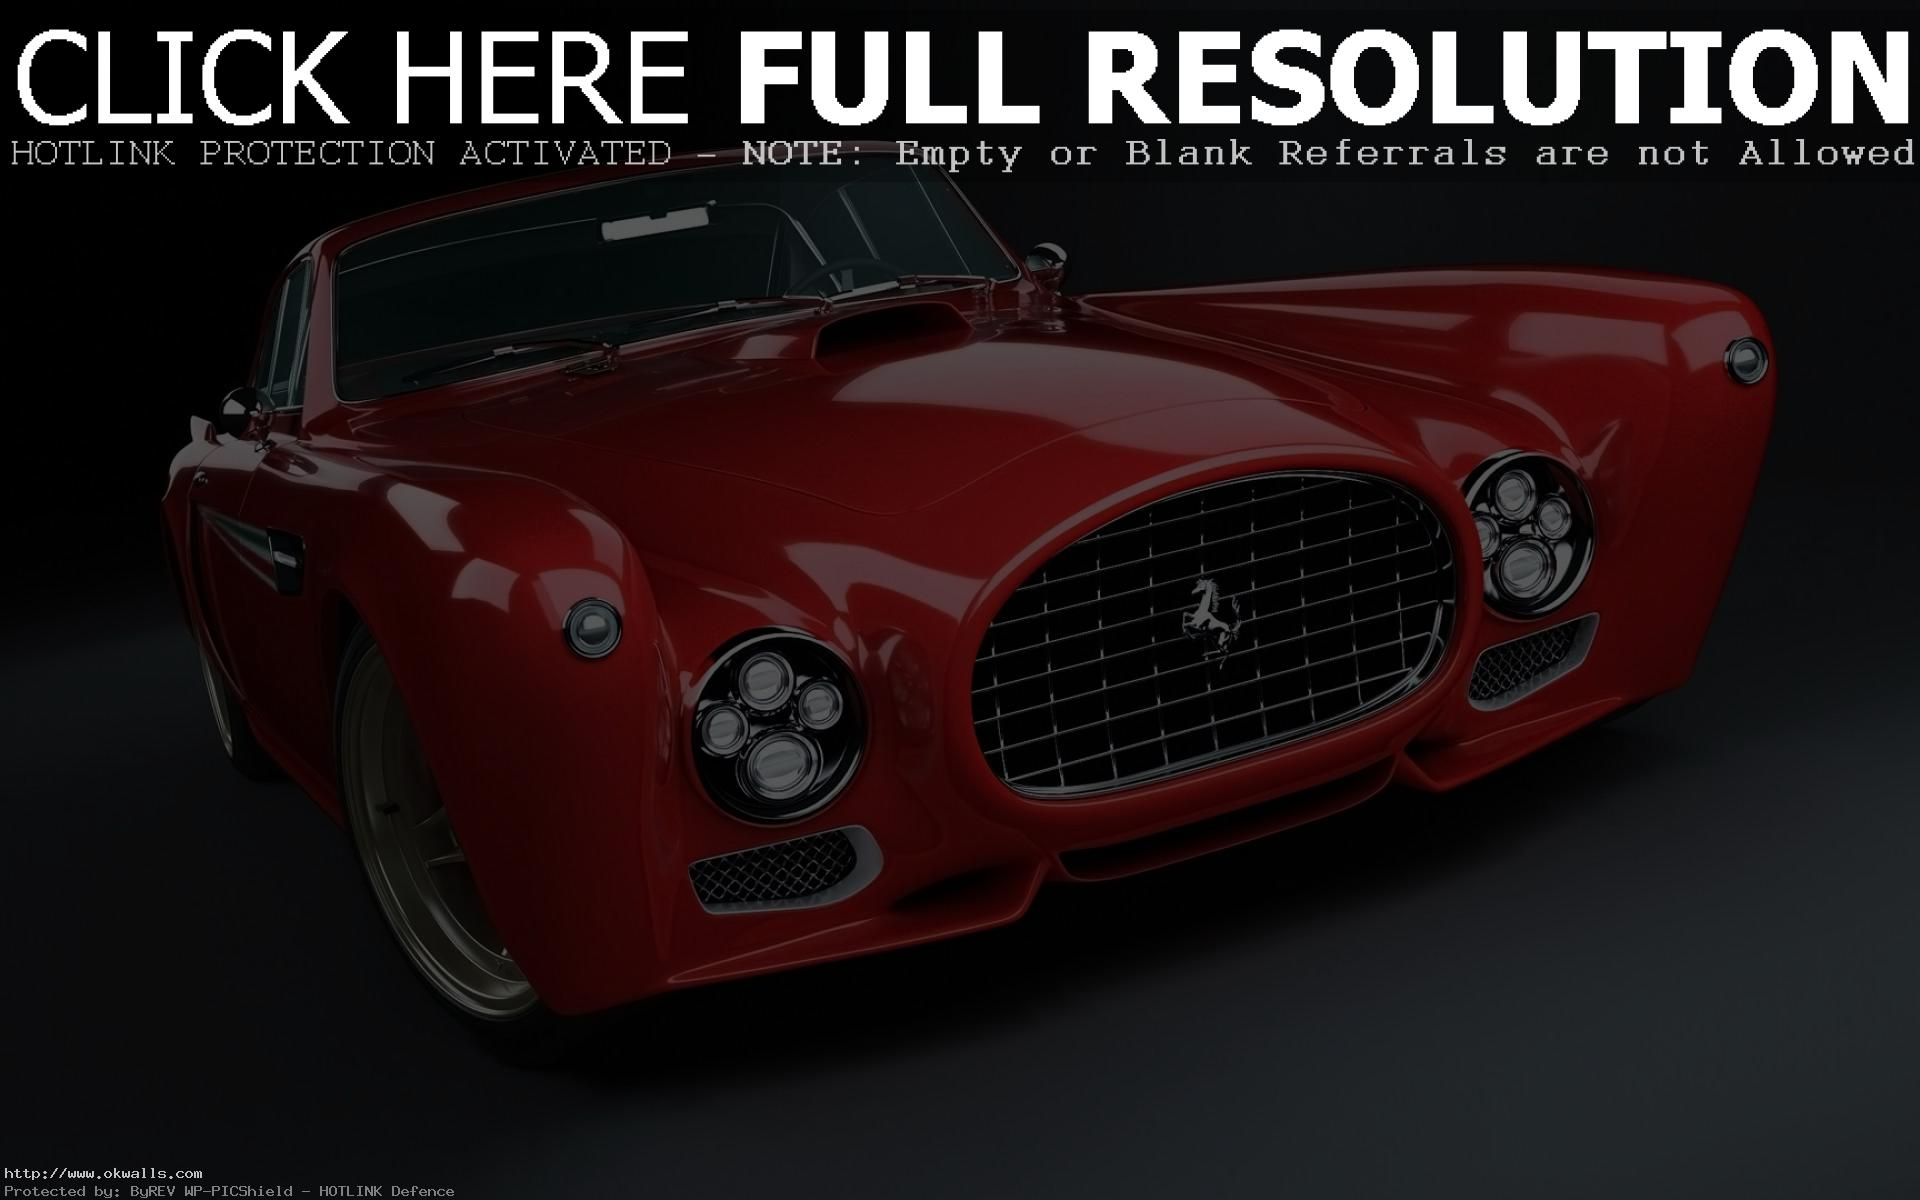 Gullwing red Ferrari F340 HD wallpaper | OK Wallpapers for desktop